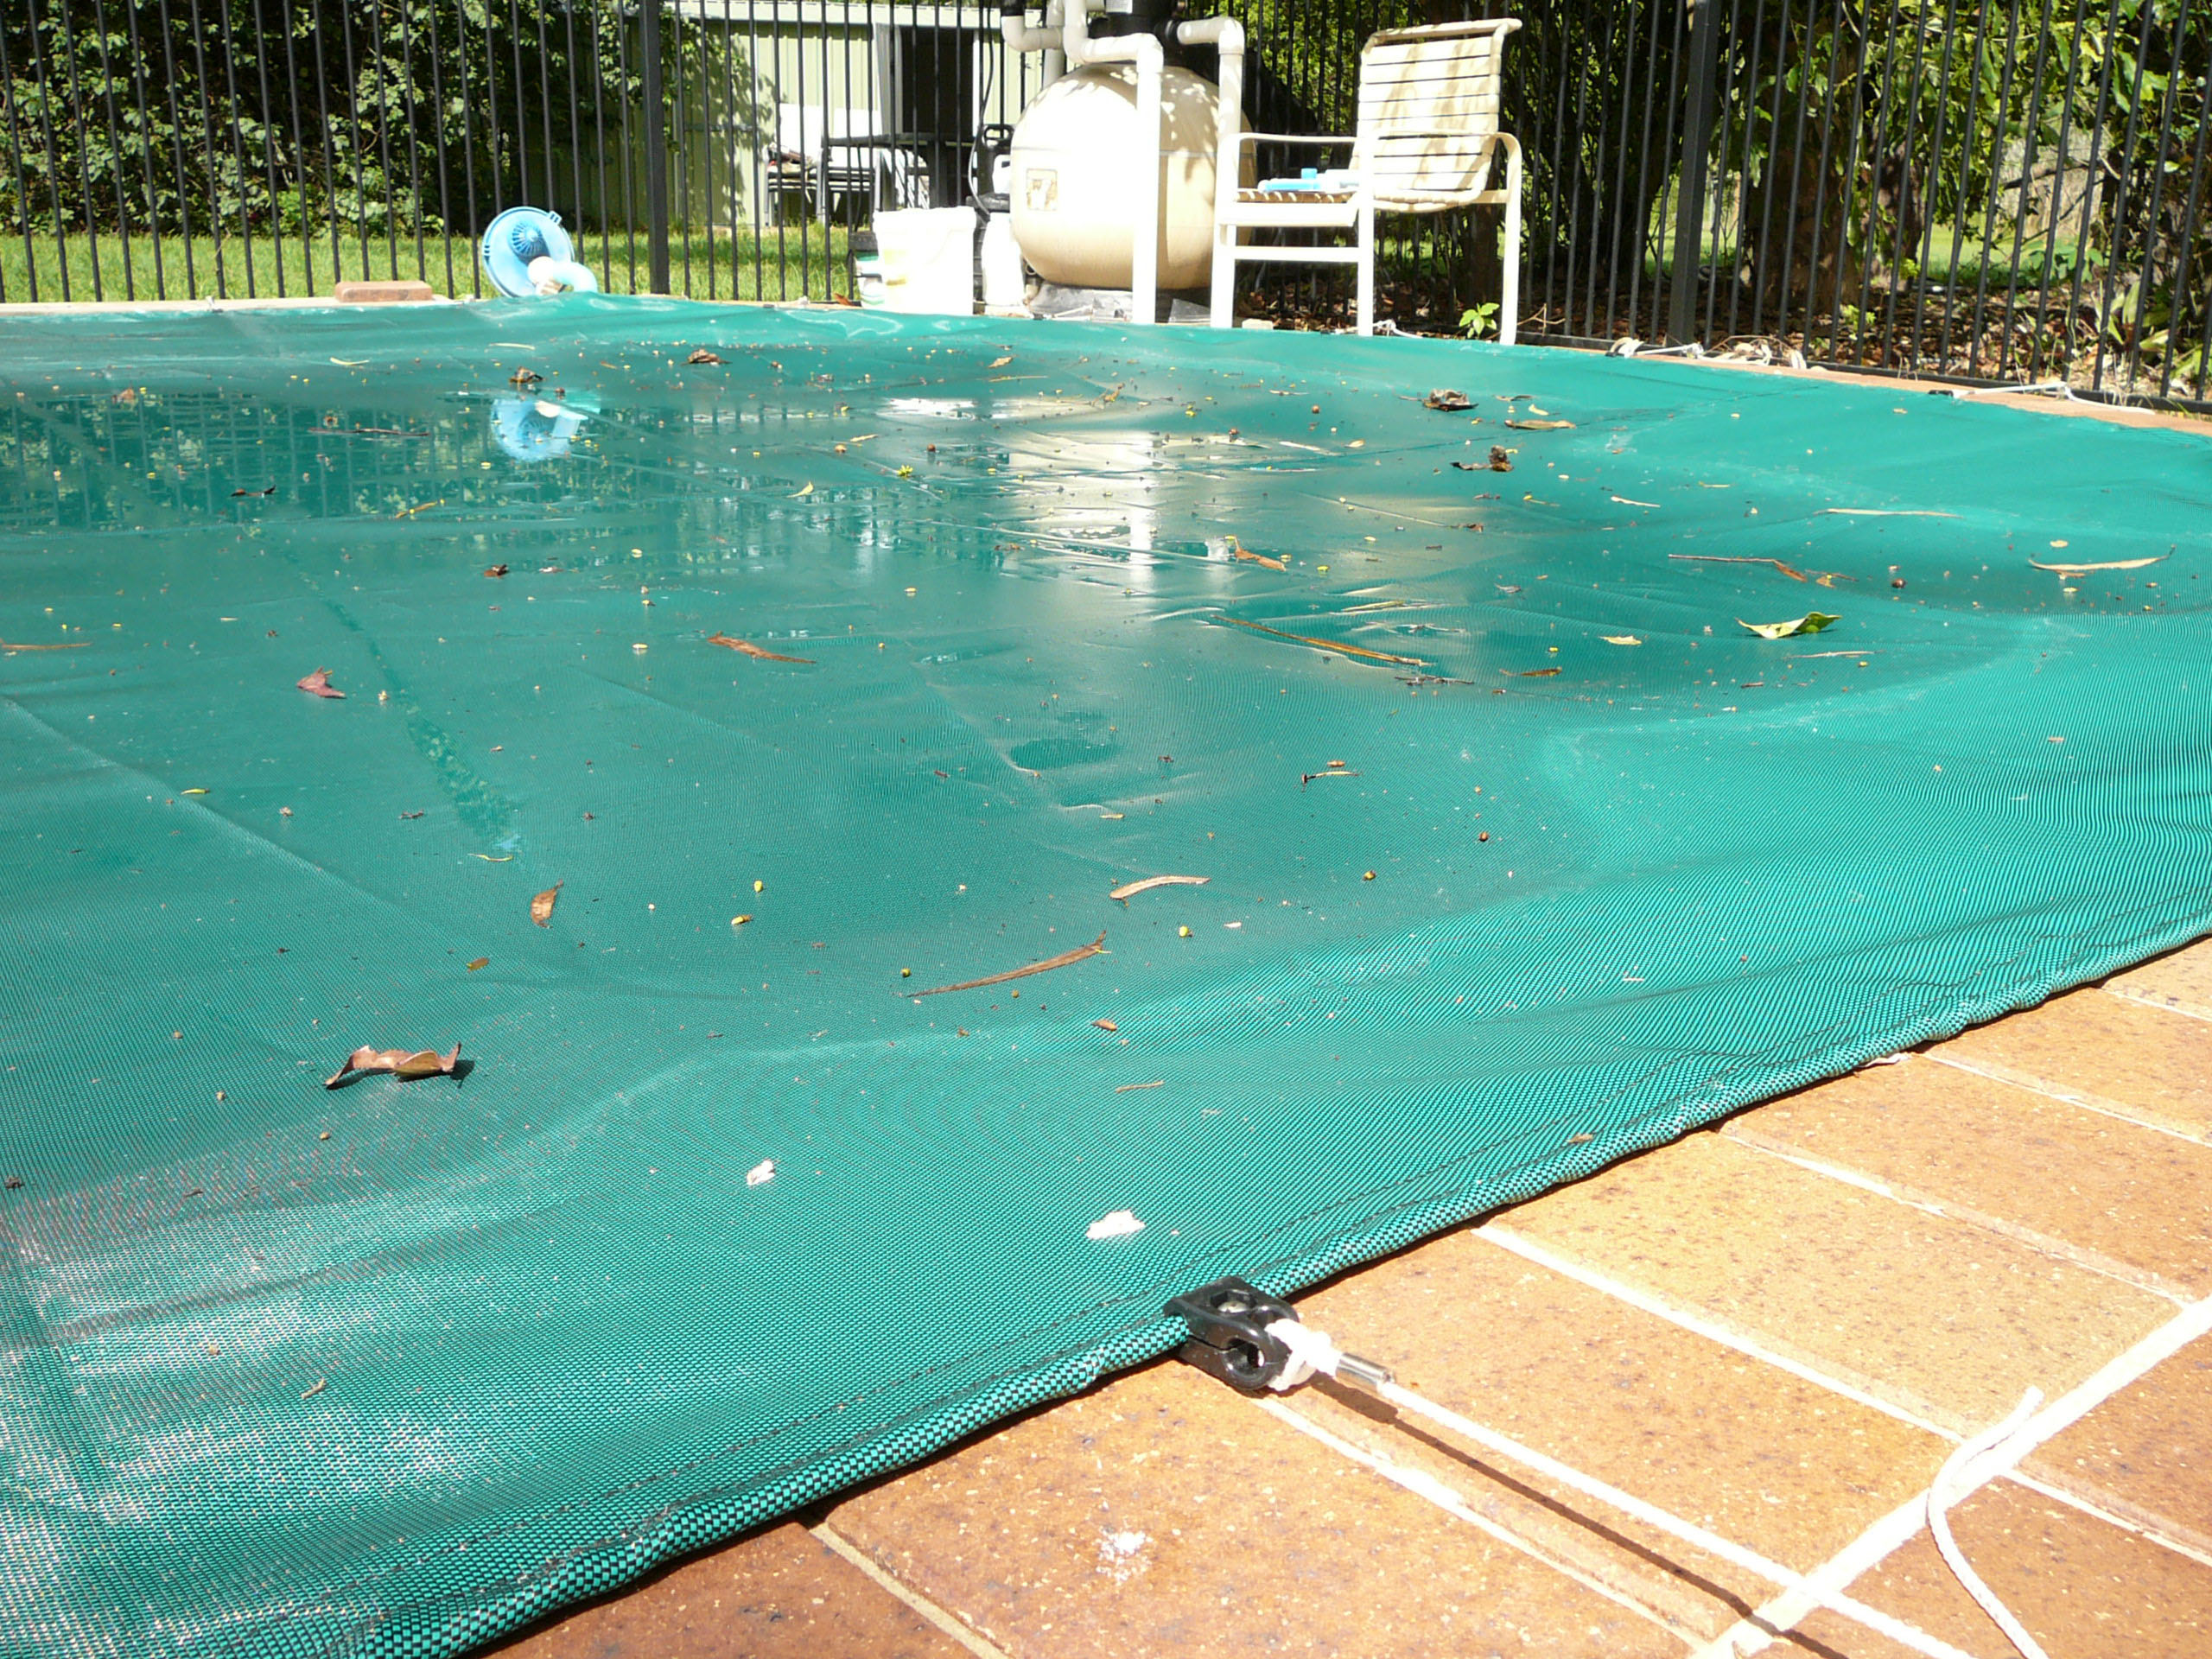 Pool debris covers stop leaves and debris from entering water